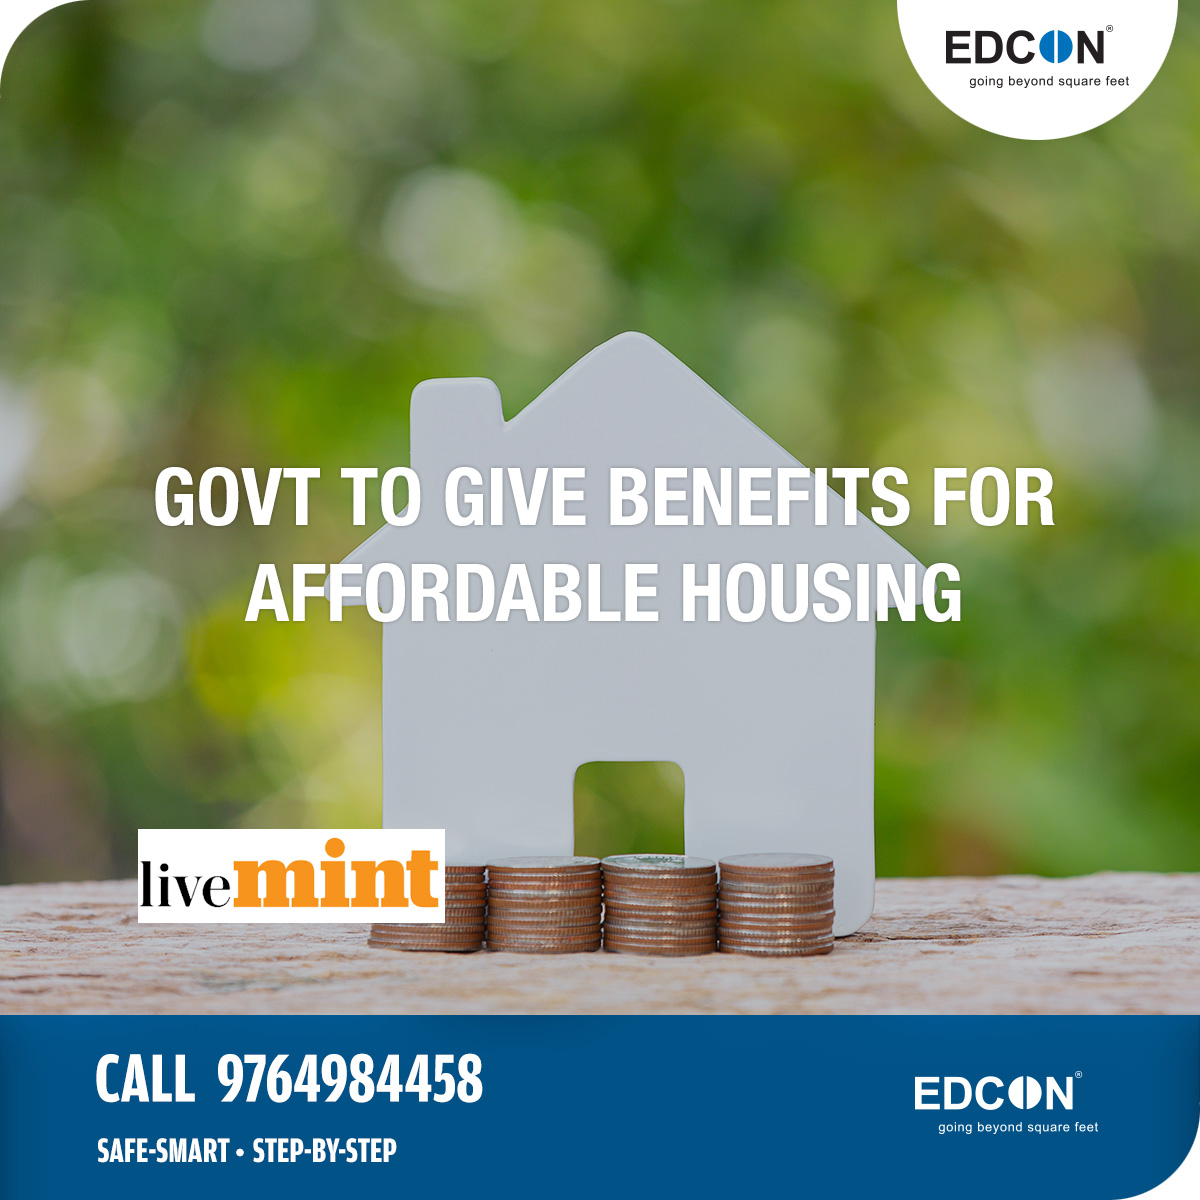 Govt to give benefits for affordable housing